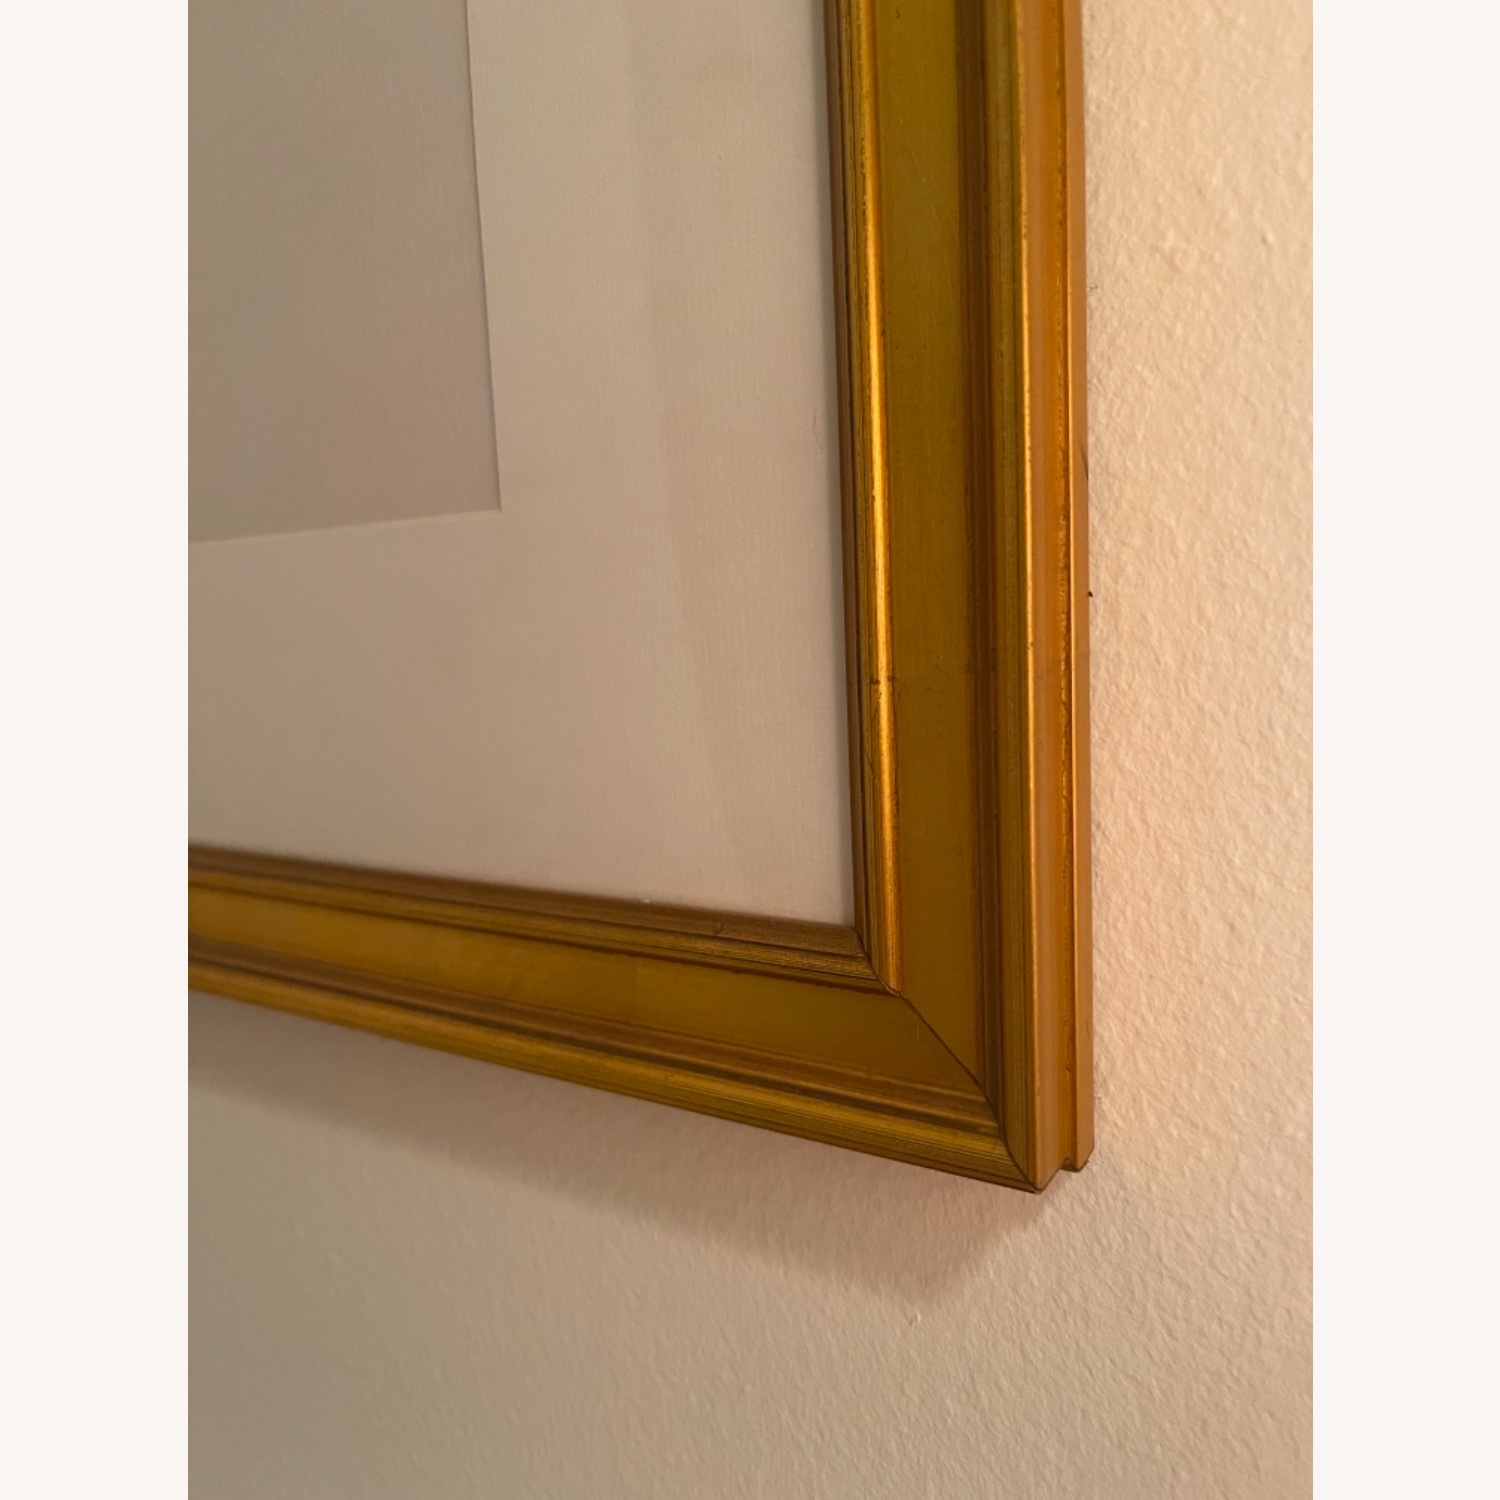 Dahlia in Gold Frame Wall Art - image-2